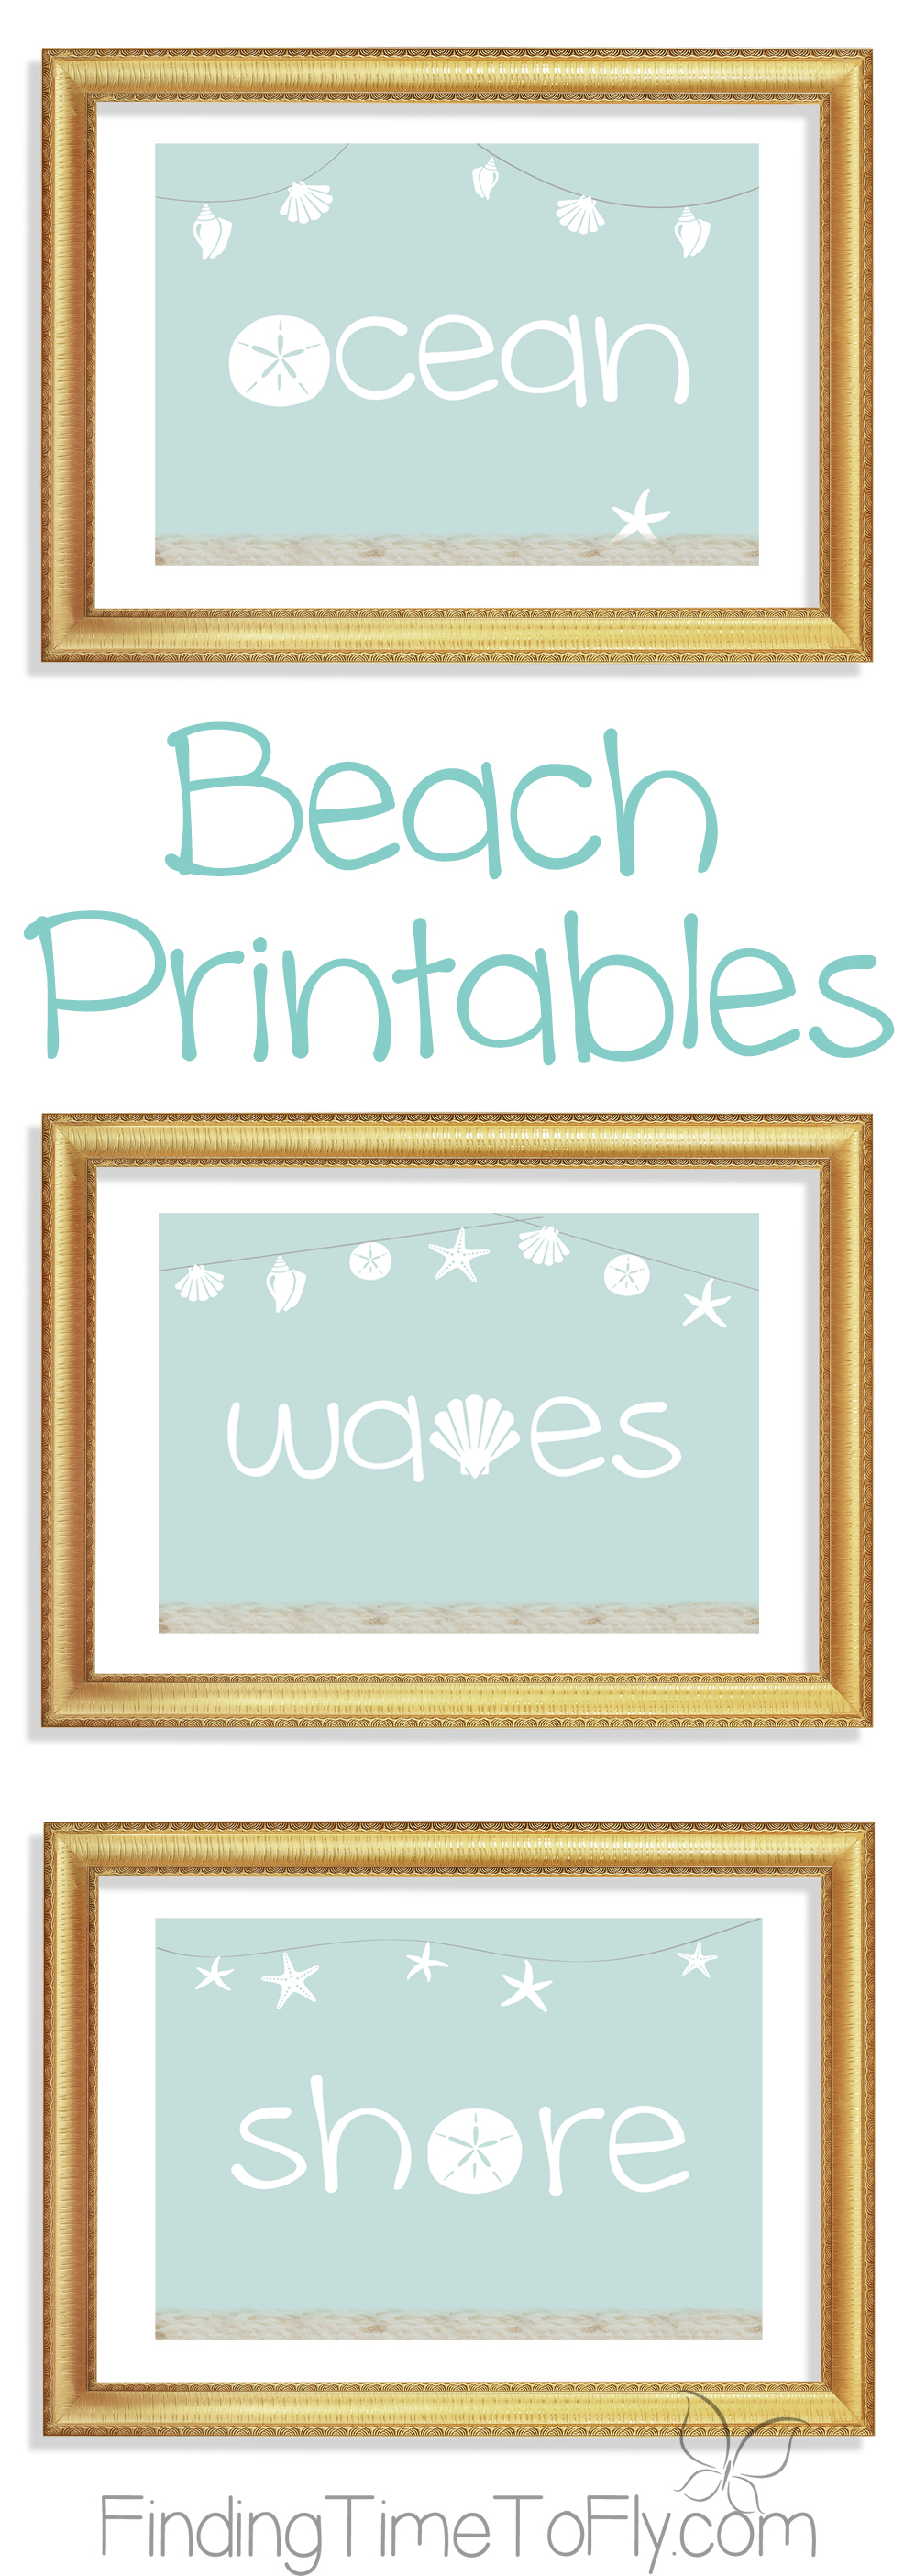 I love this set of 3 beach prints! They will go perfectly with my coastal decor! Love the gold frames, too!